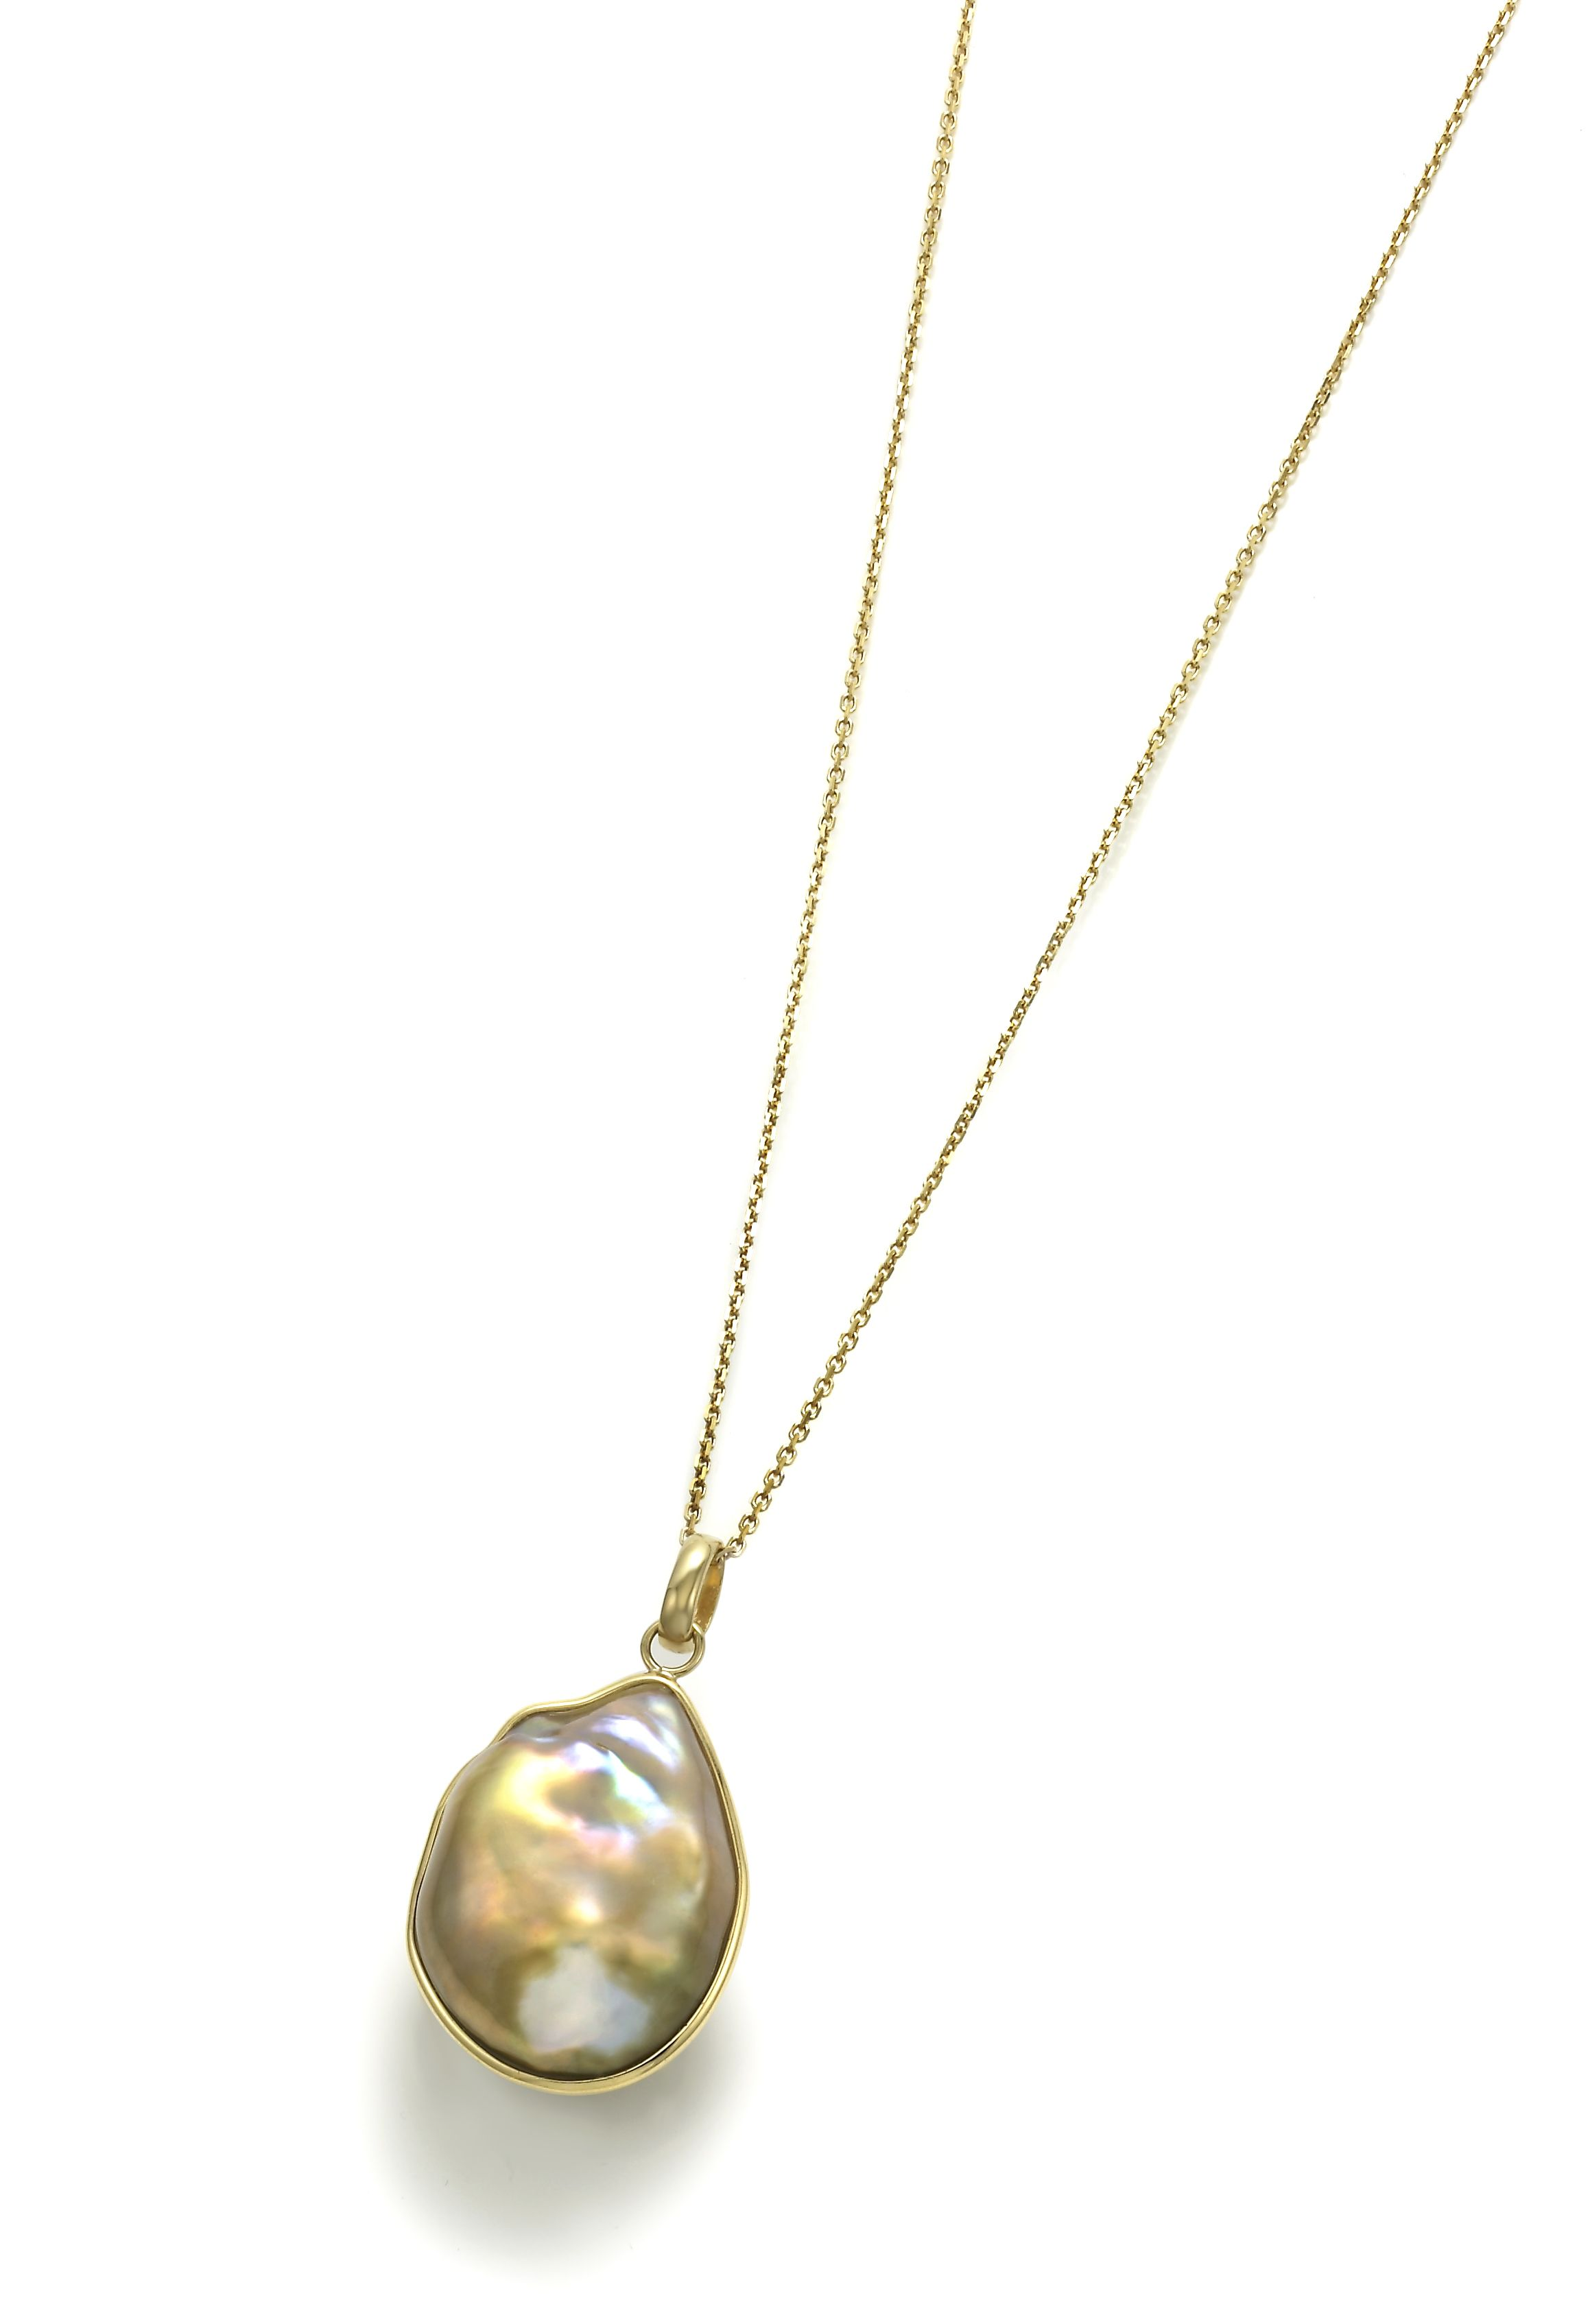 pendant cultured necklace dew pearl sydney fp toscow w ok products morning